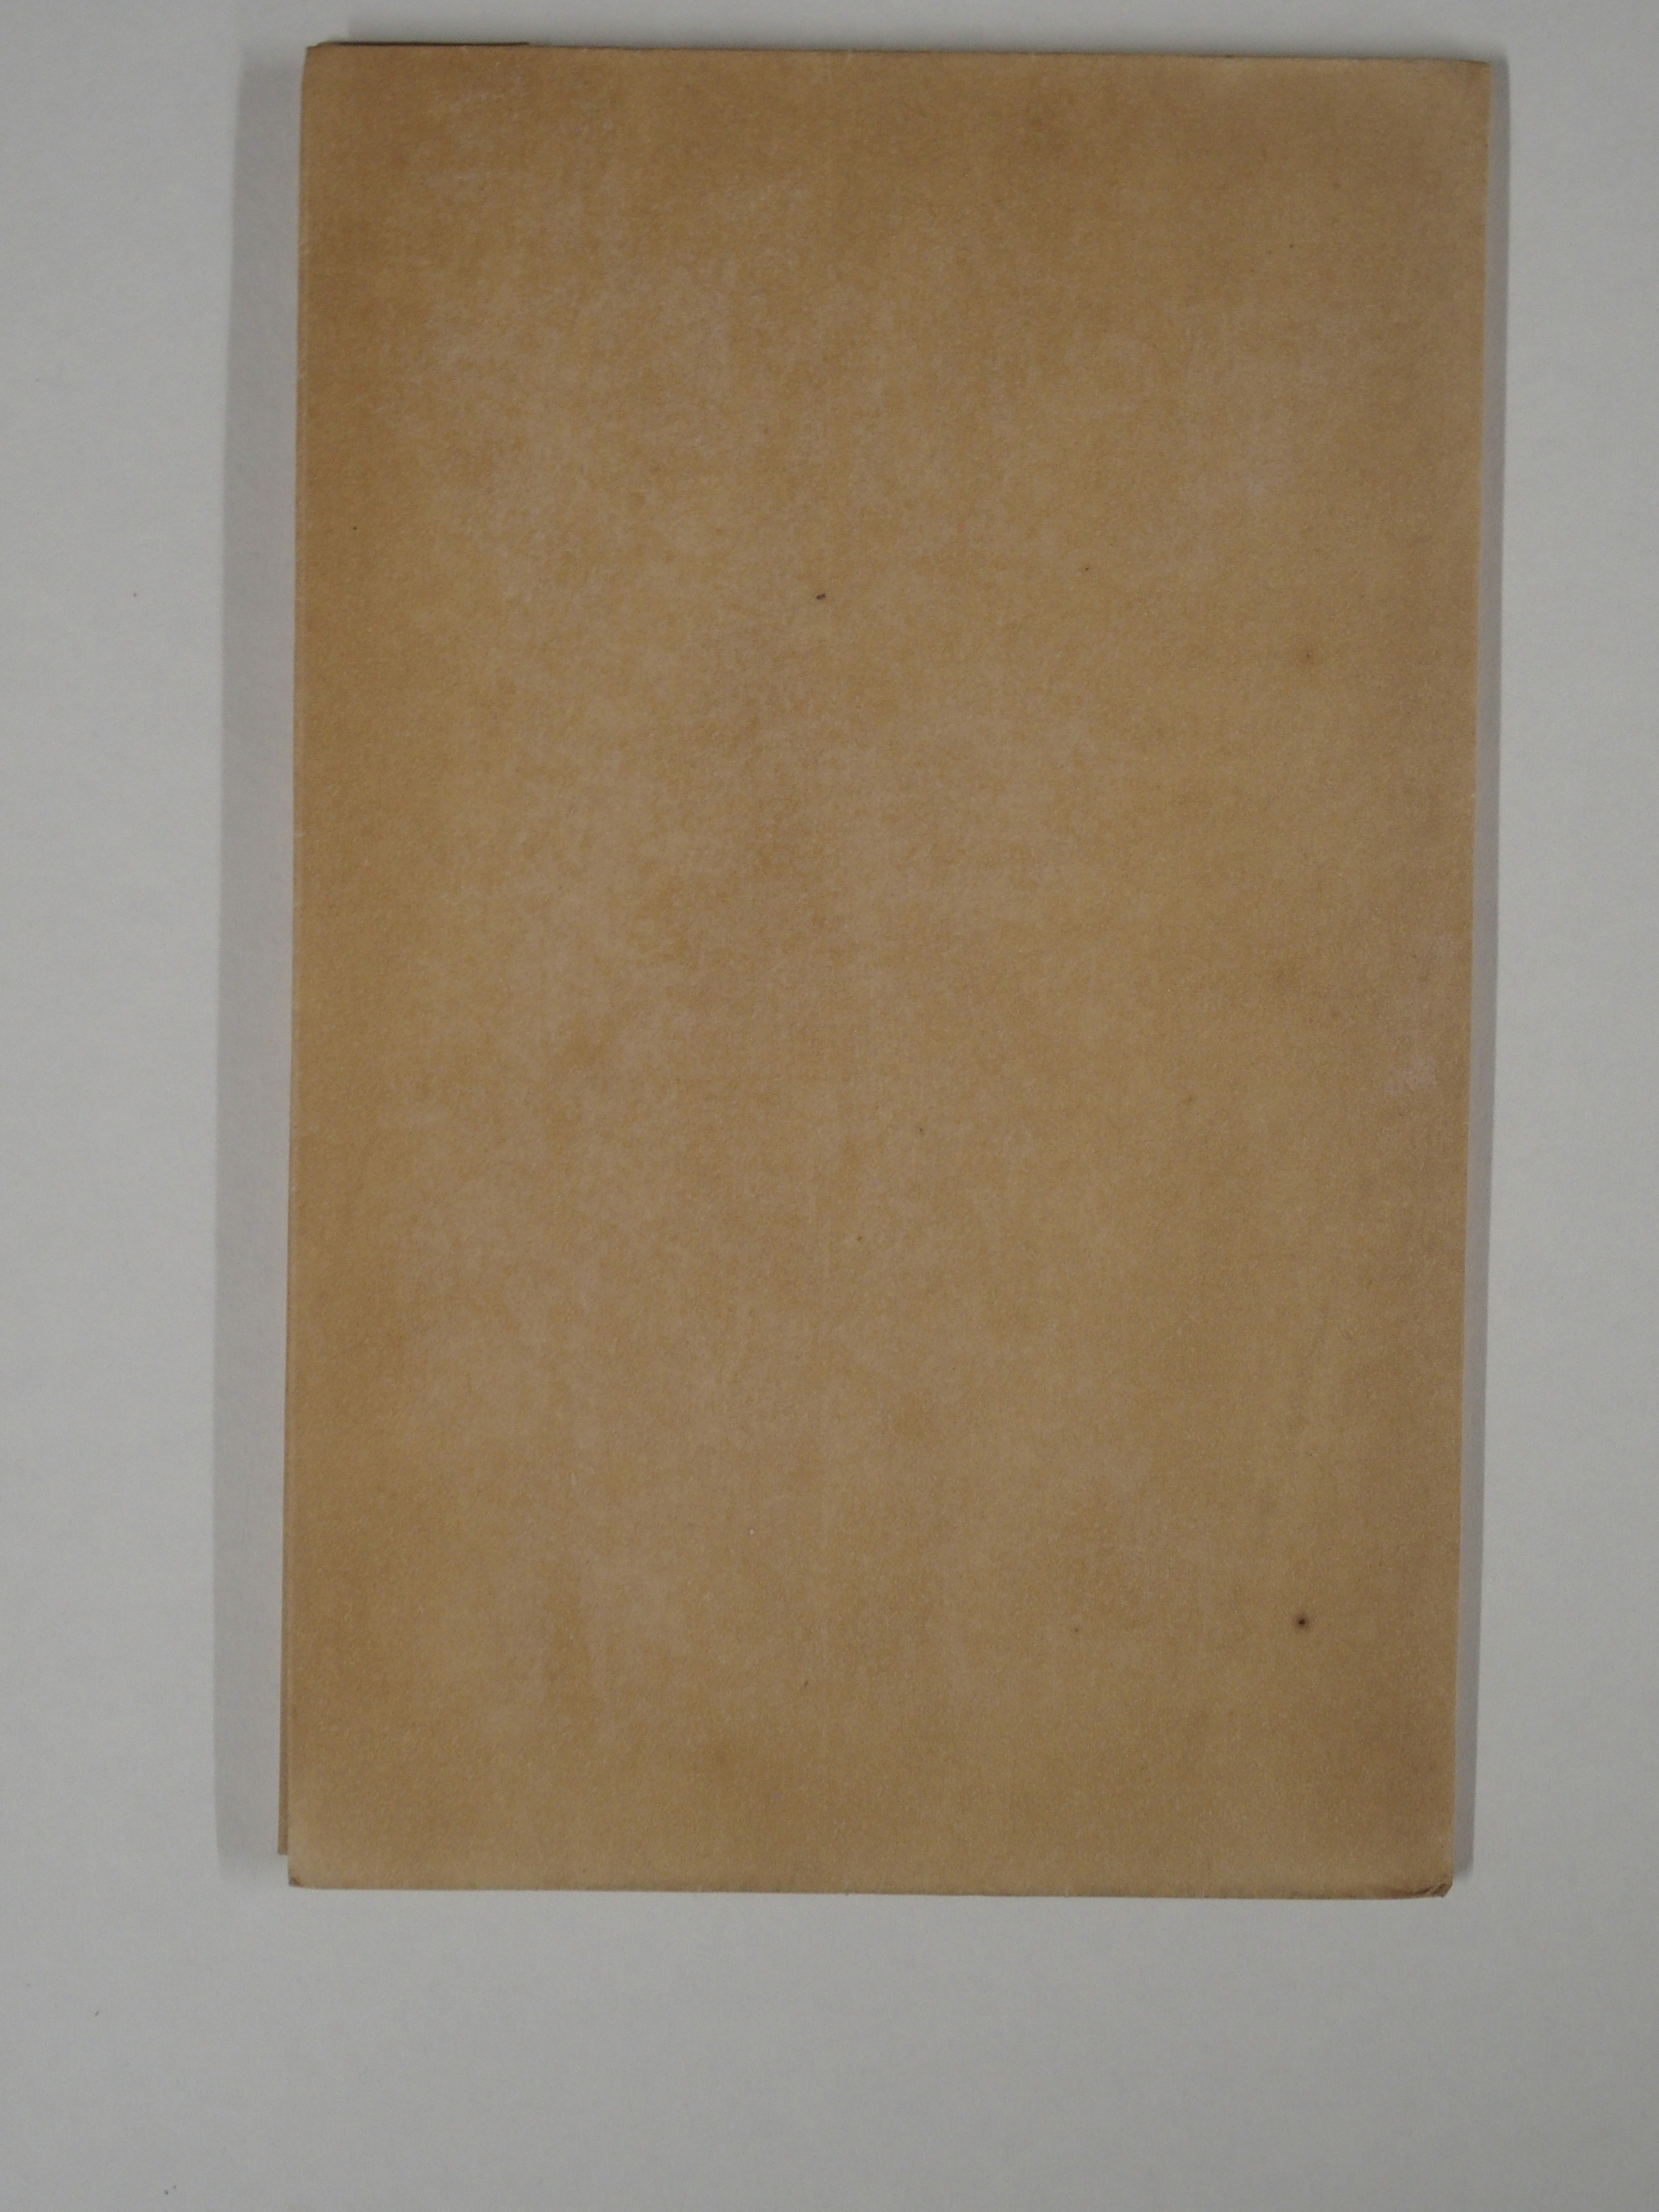 •A COLLECTION TO INCLUDE DRAWINGS, GREETINGS CARDS AND A BOOK ROBERT LEISHMAN 'Bob', inscribed, - Image 5 of 11